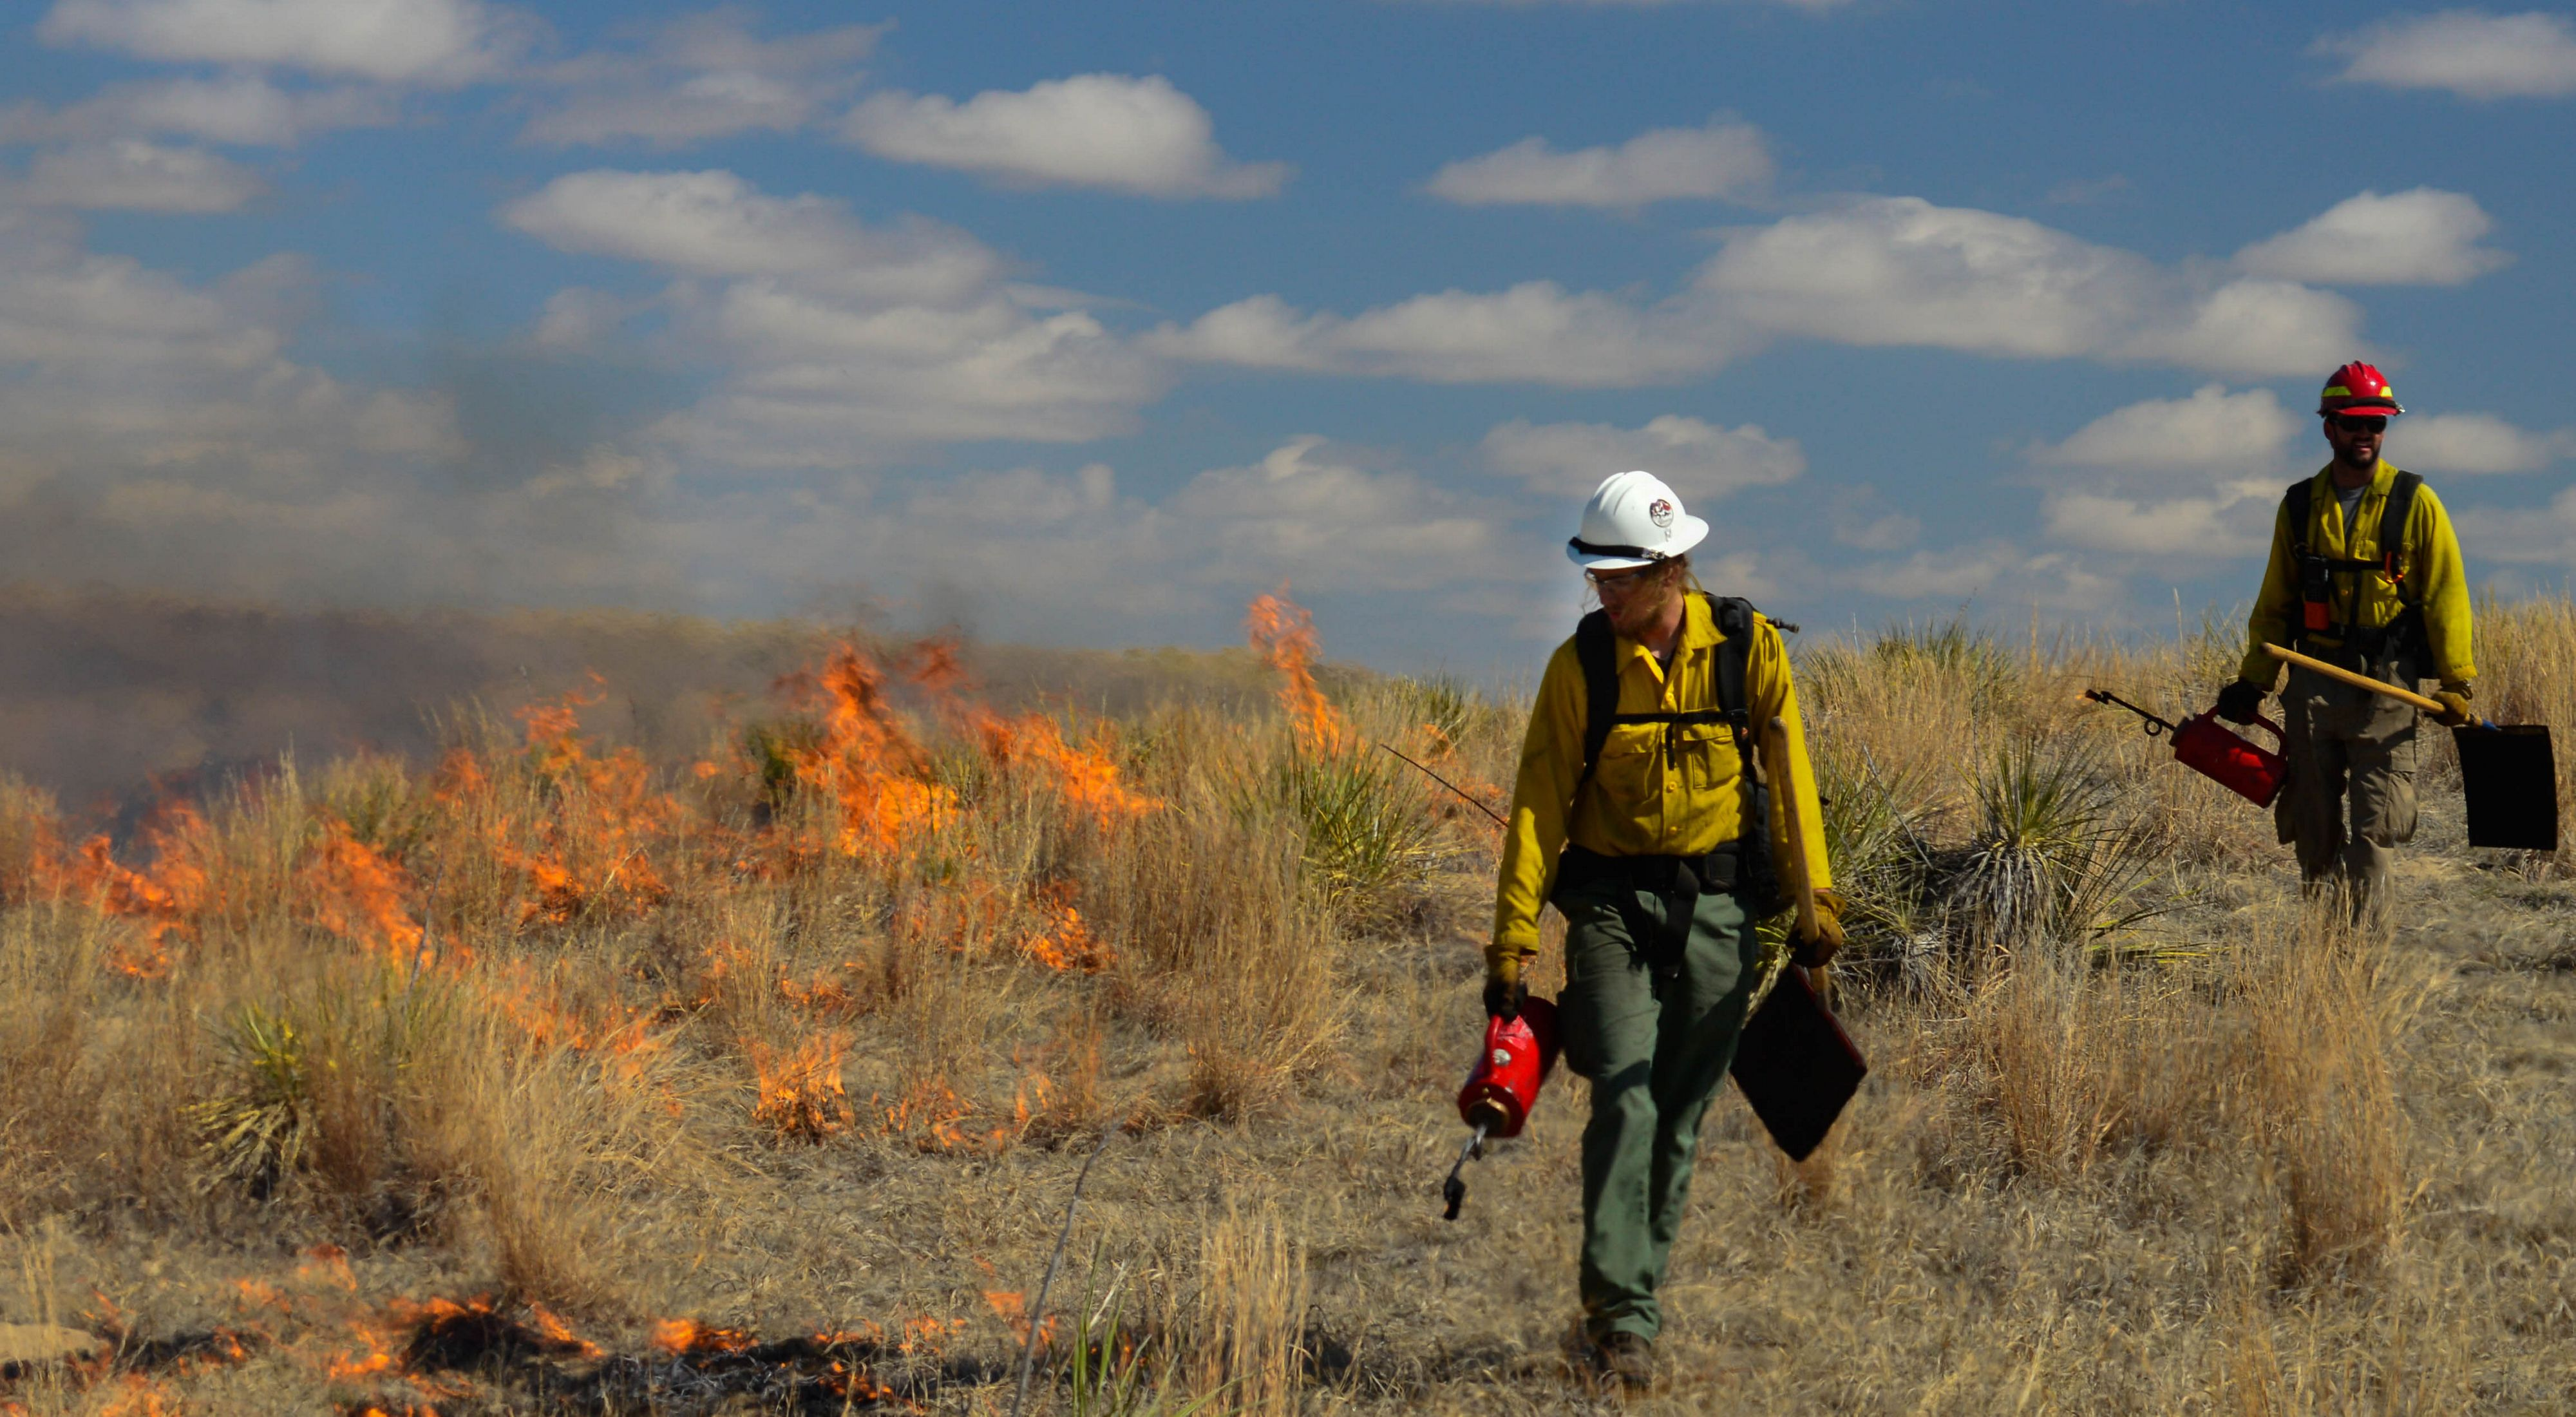 Using a drip torch for a controlled burn